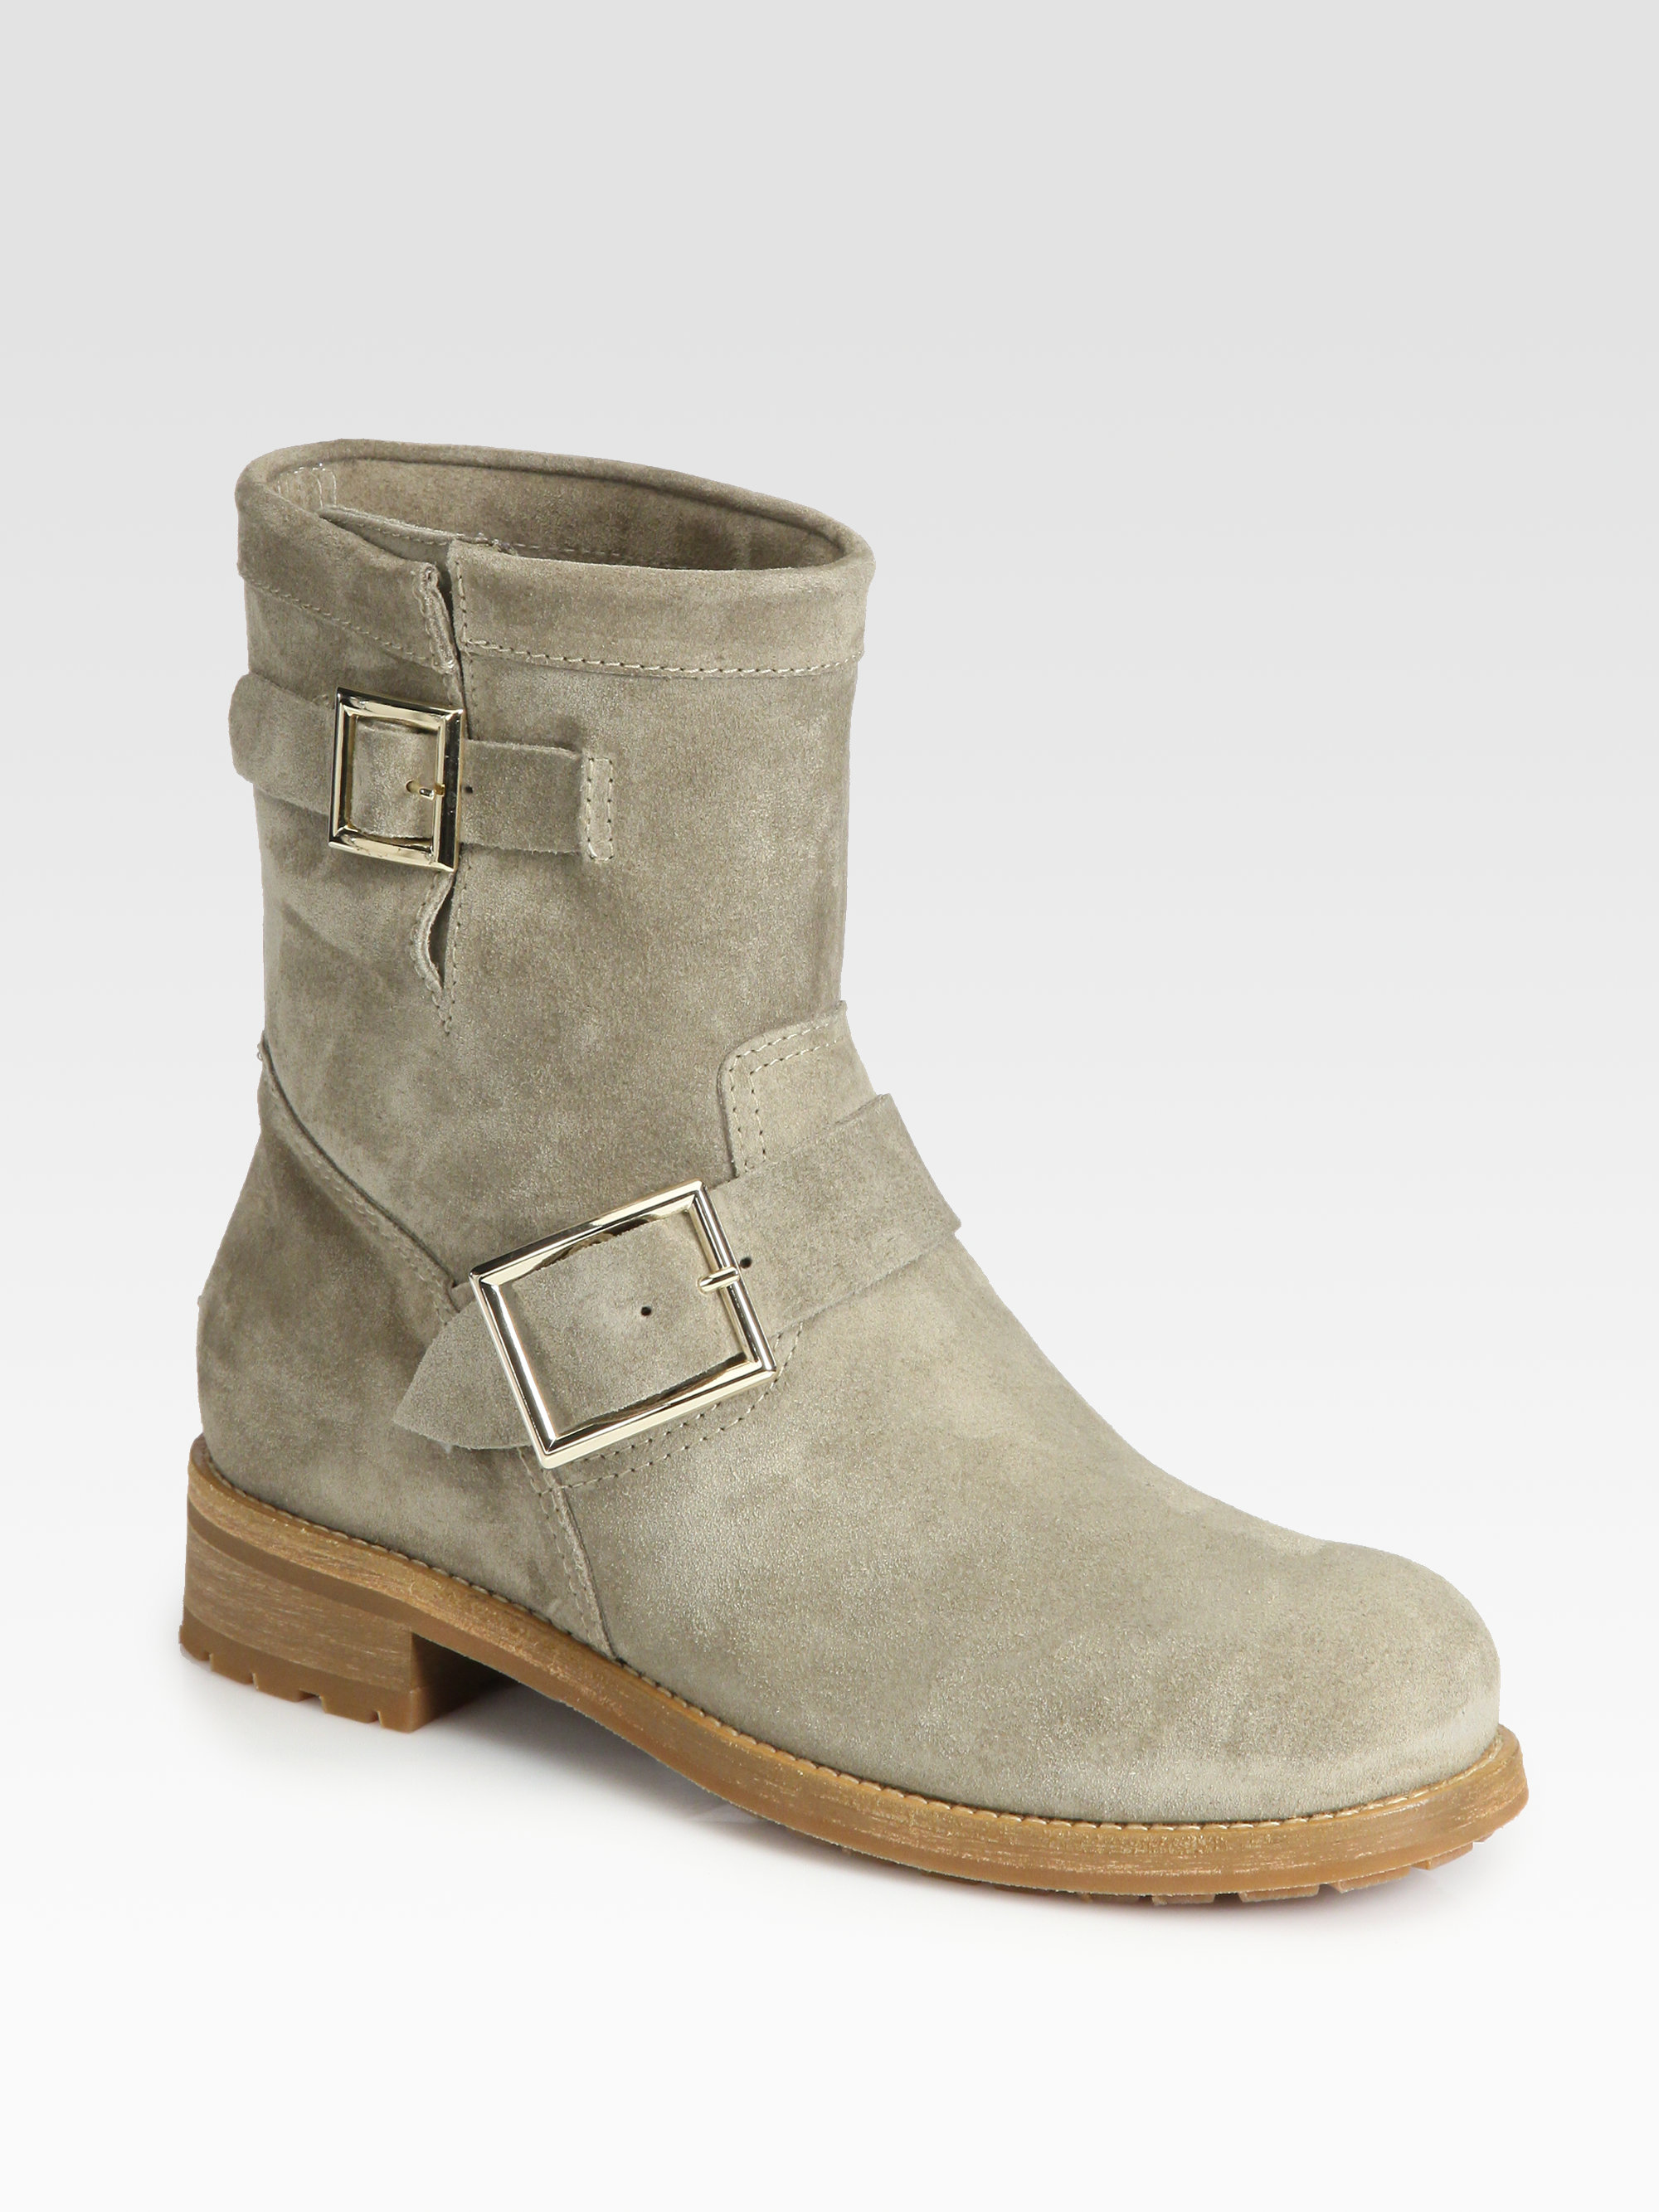 e63122a77ea Lyst - Jimmy Choo Youth Suede Biker Boots in Gray